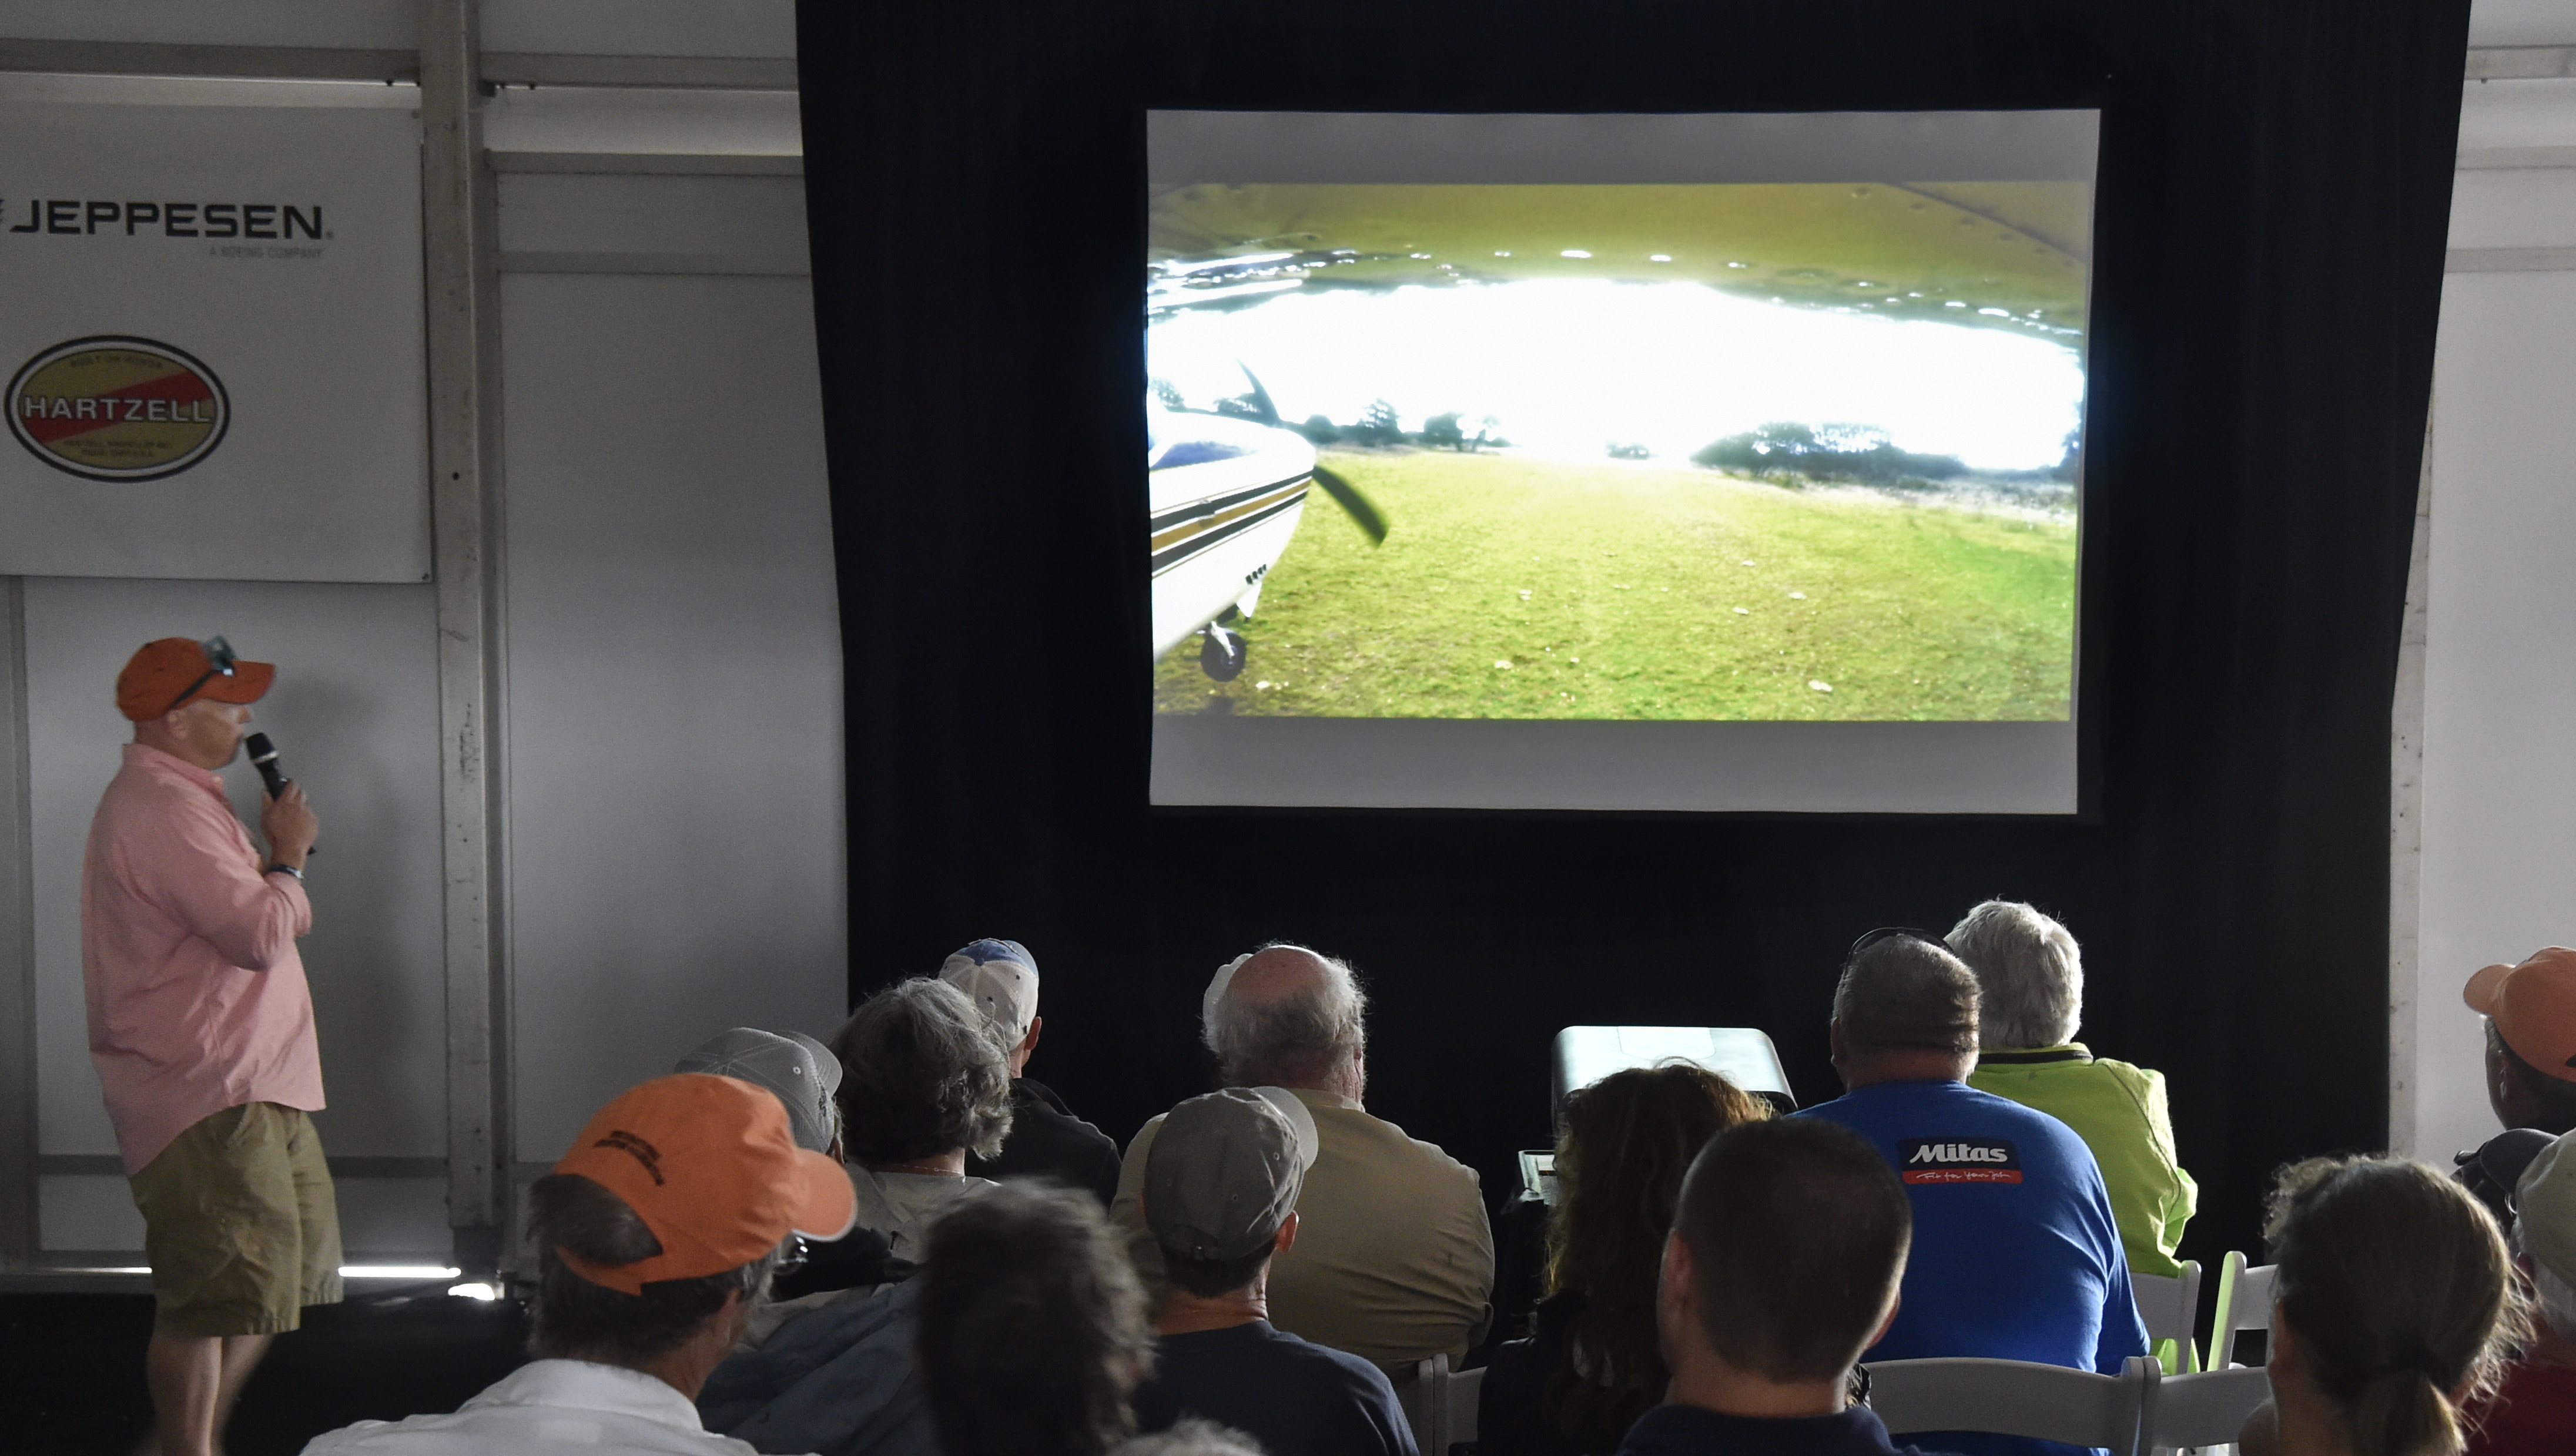 Pilots watch a Tech Talk presentation at EAA AirVenture's Pilot Proficiency Center. Jack Pelton, EAA CEO and chairman, said the association met its goal of 5,000 pilots passing through the learning facility. Photo by David Tulis.